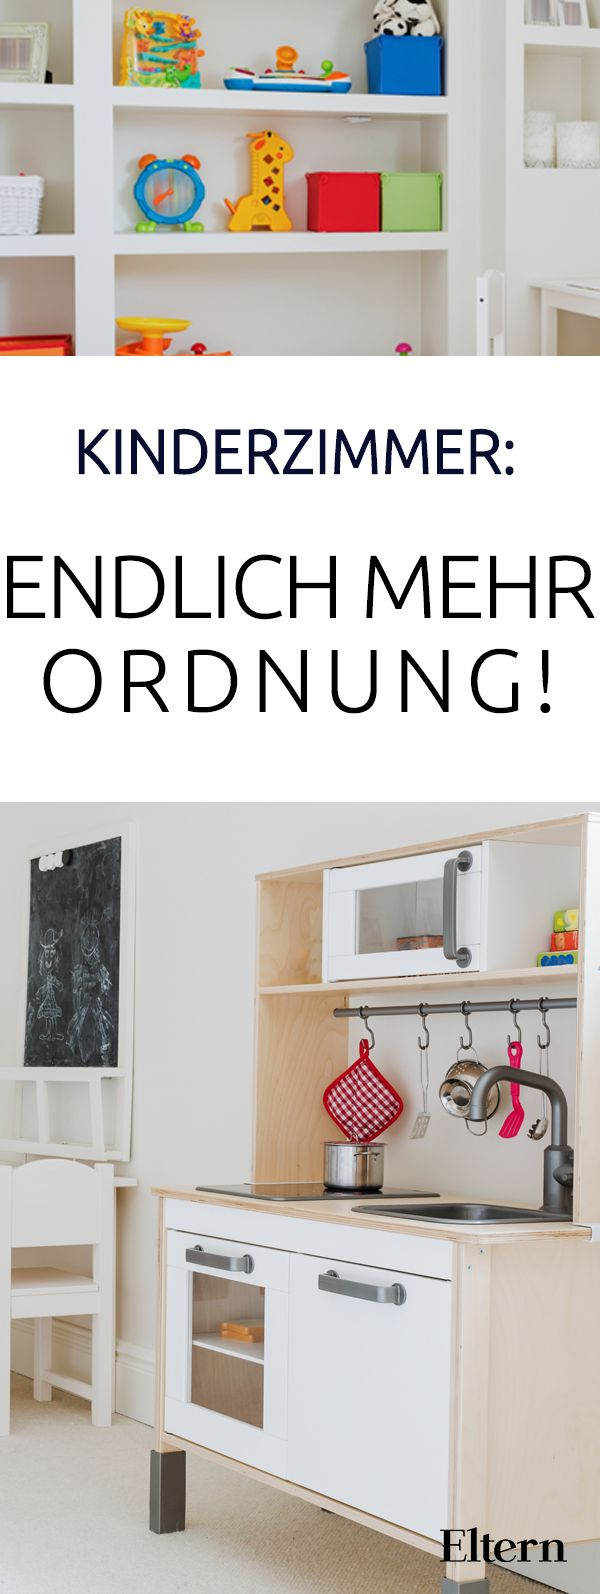 196 besten diy kinderzimmer bilder auf pinterest diy kinderzimmer kinderzimmer ideen und mock up. Black Bedroom Furniture Sets. Home Design Ideas